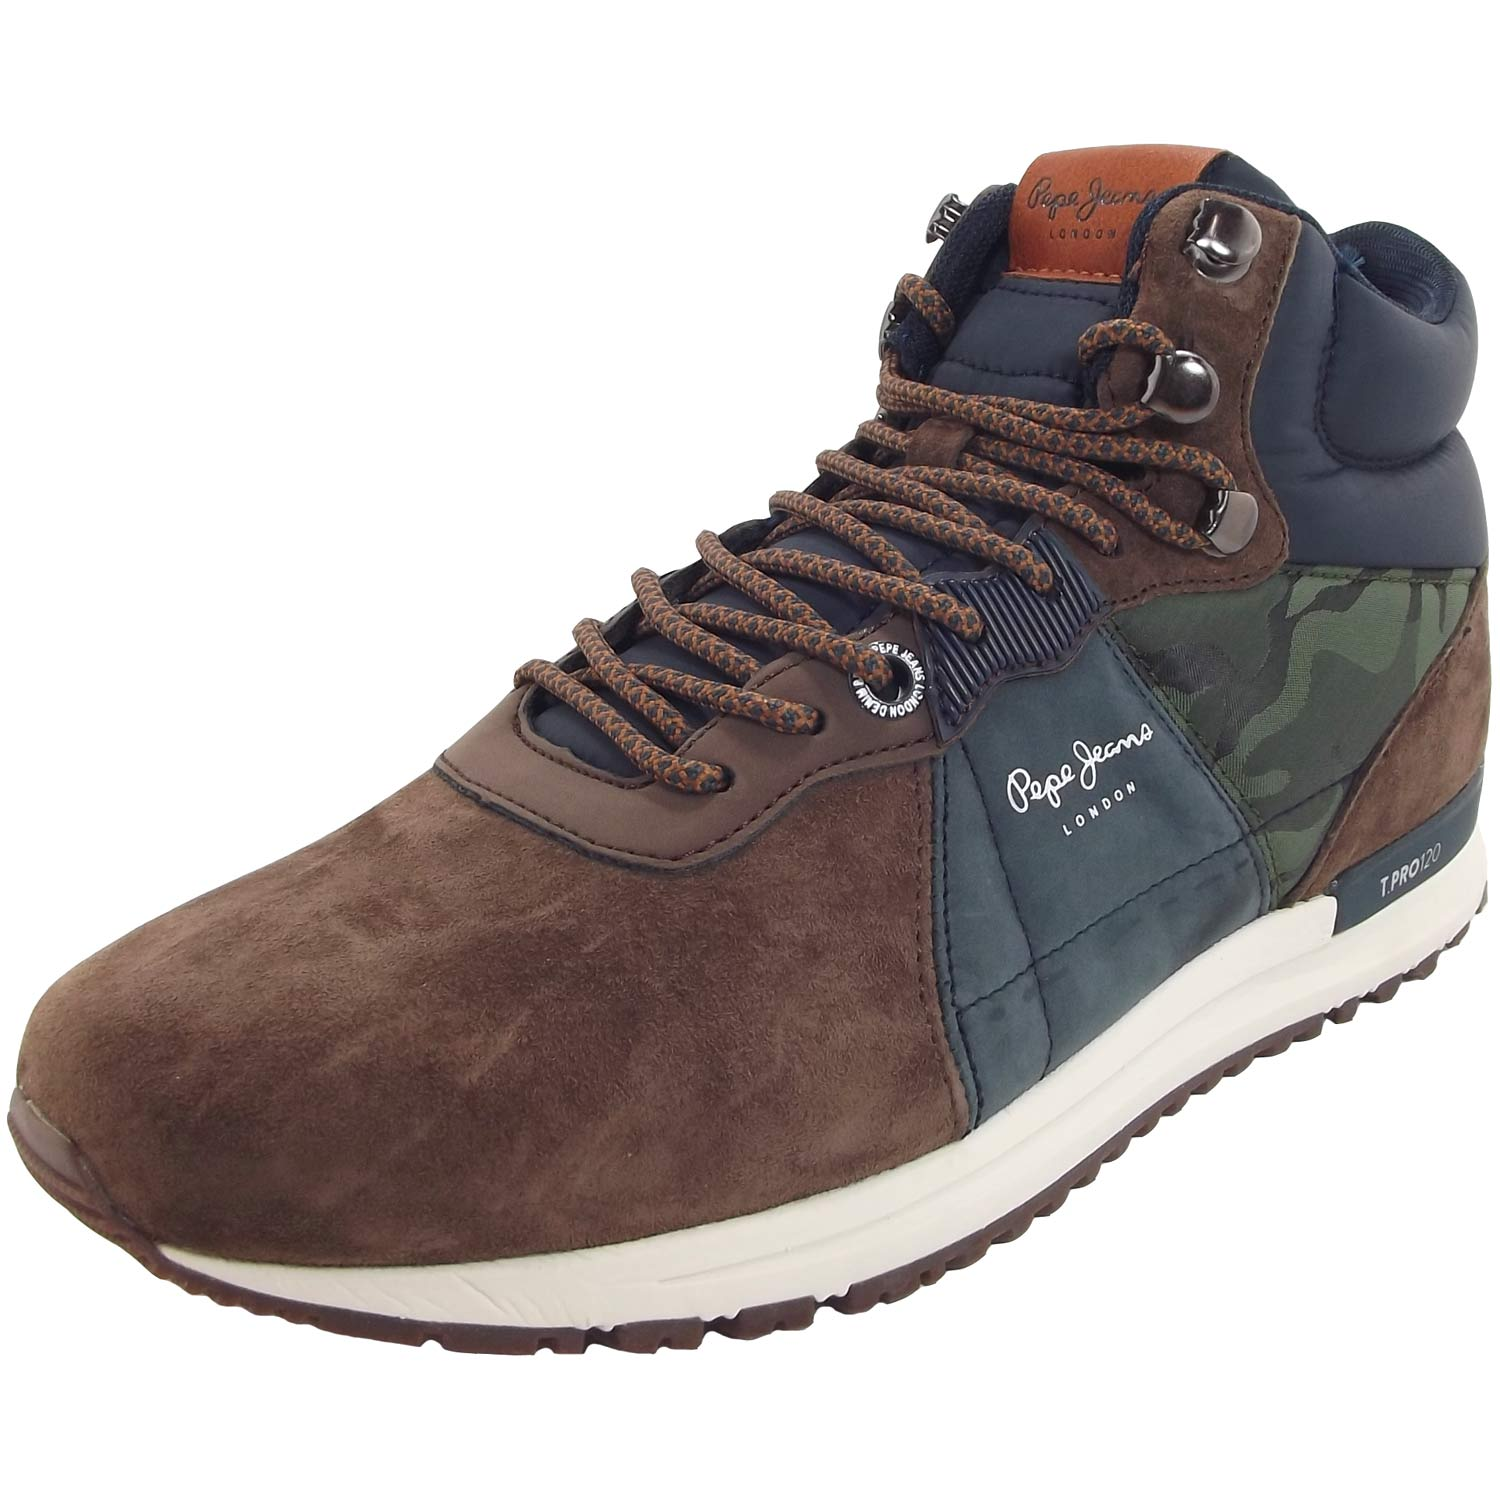 Pepe Jeans Tinker Pro Boot braunblaucamo (stag) | Flux Online